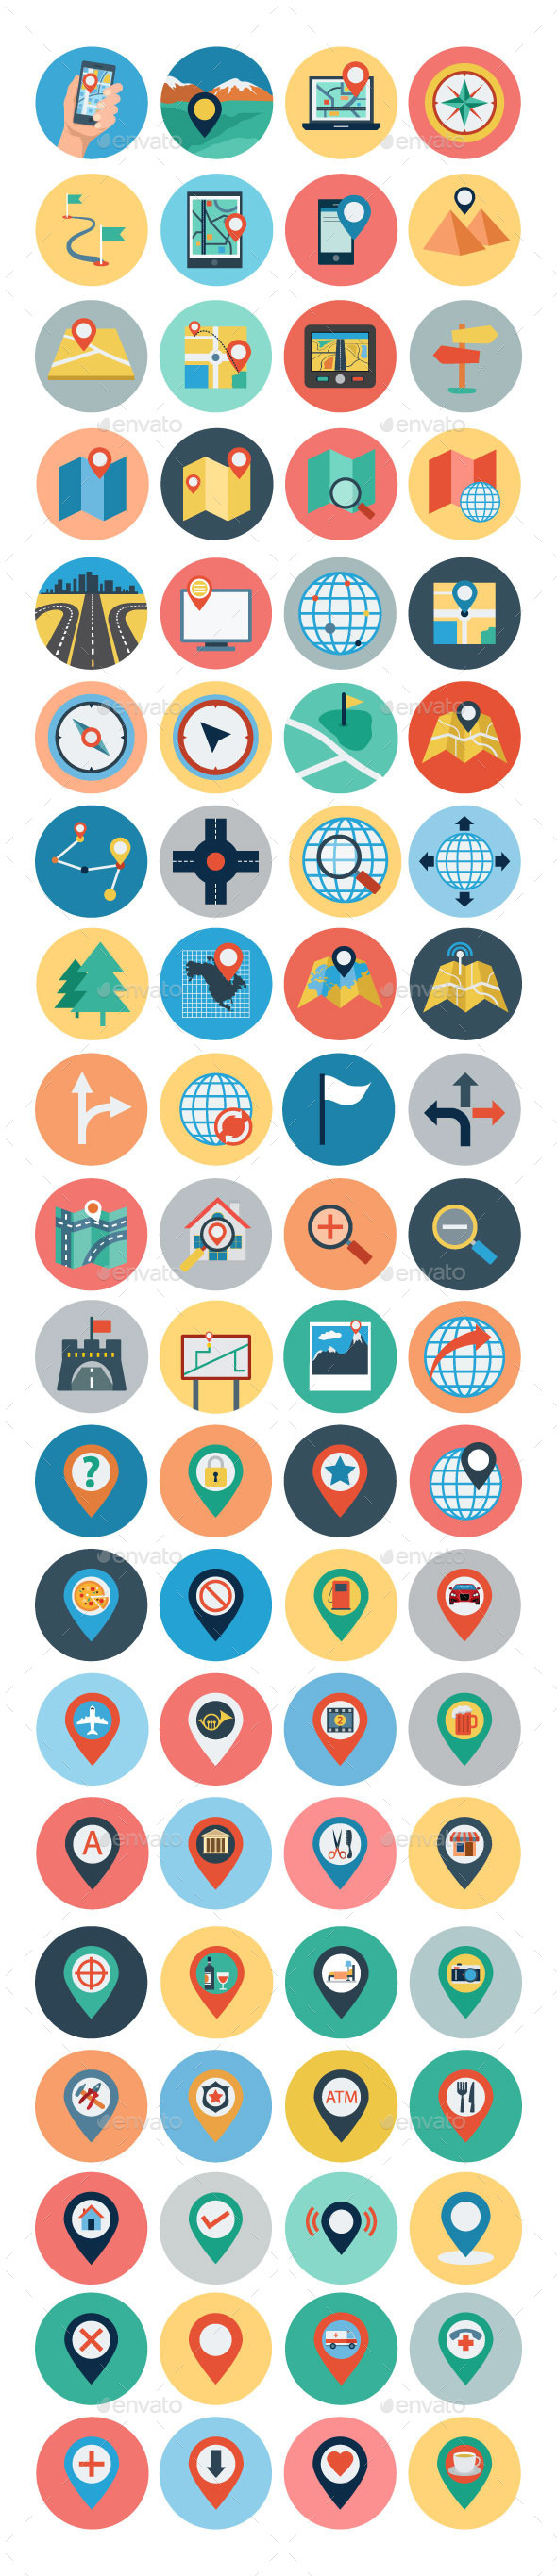 GraphicRiver 75& Flat Maps and Navigation Icons 10960757